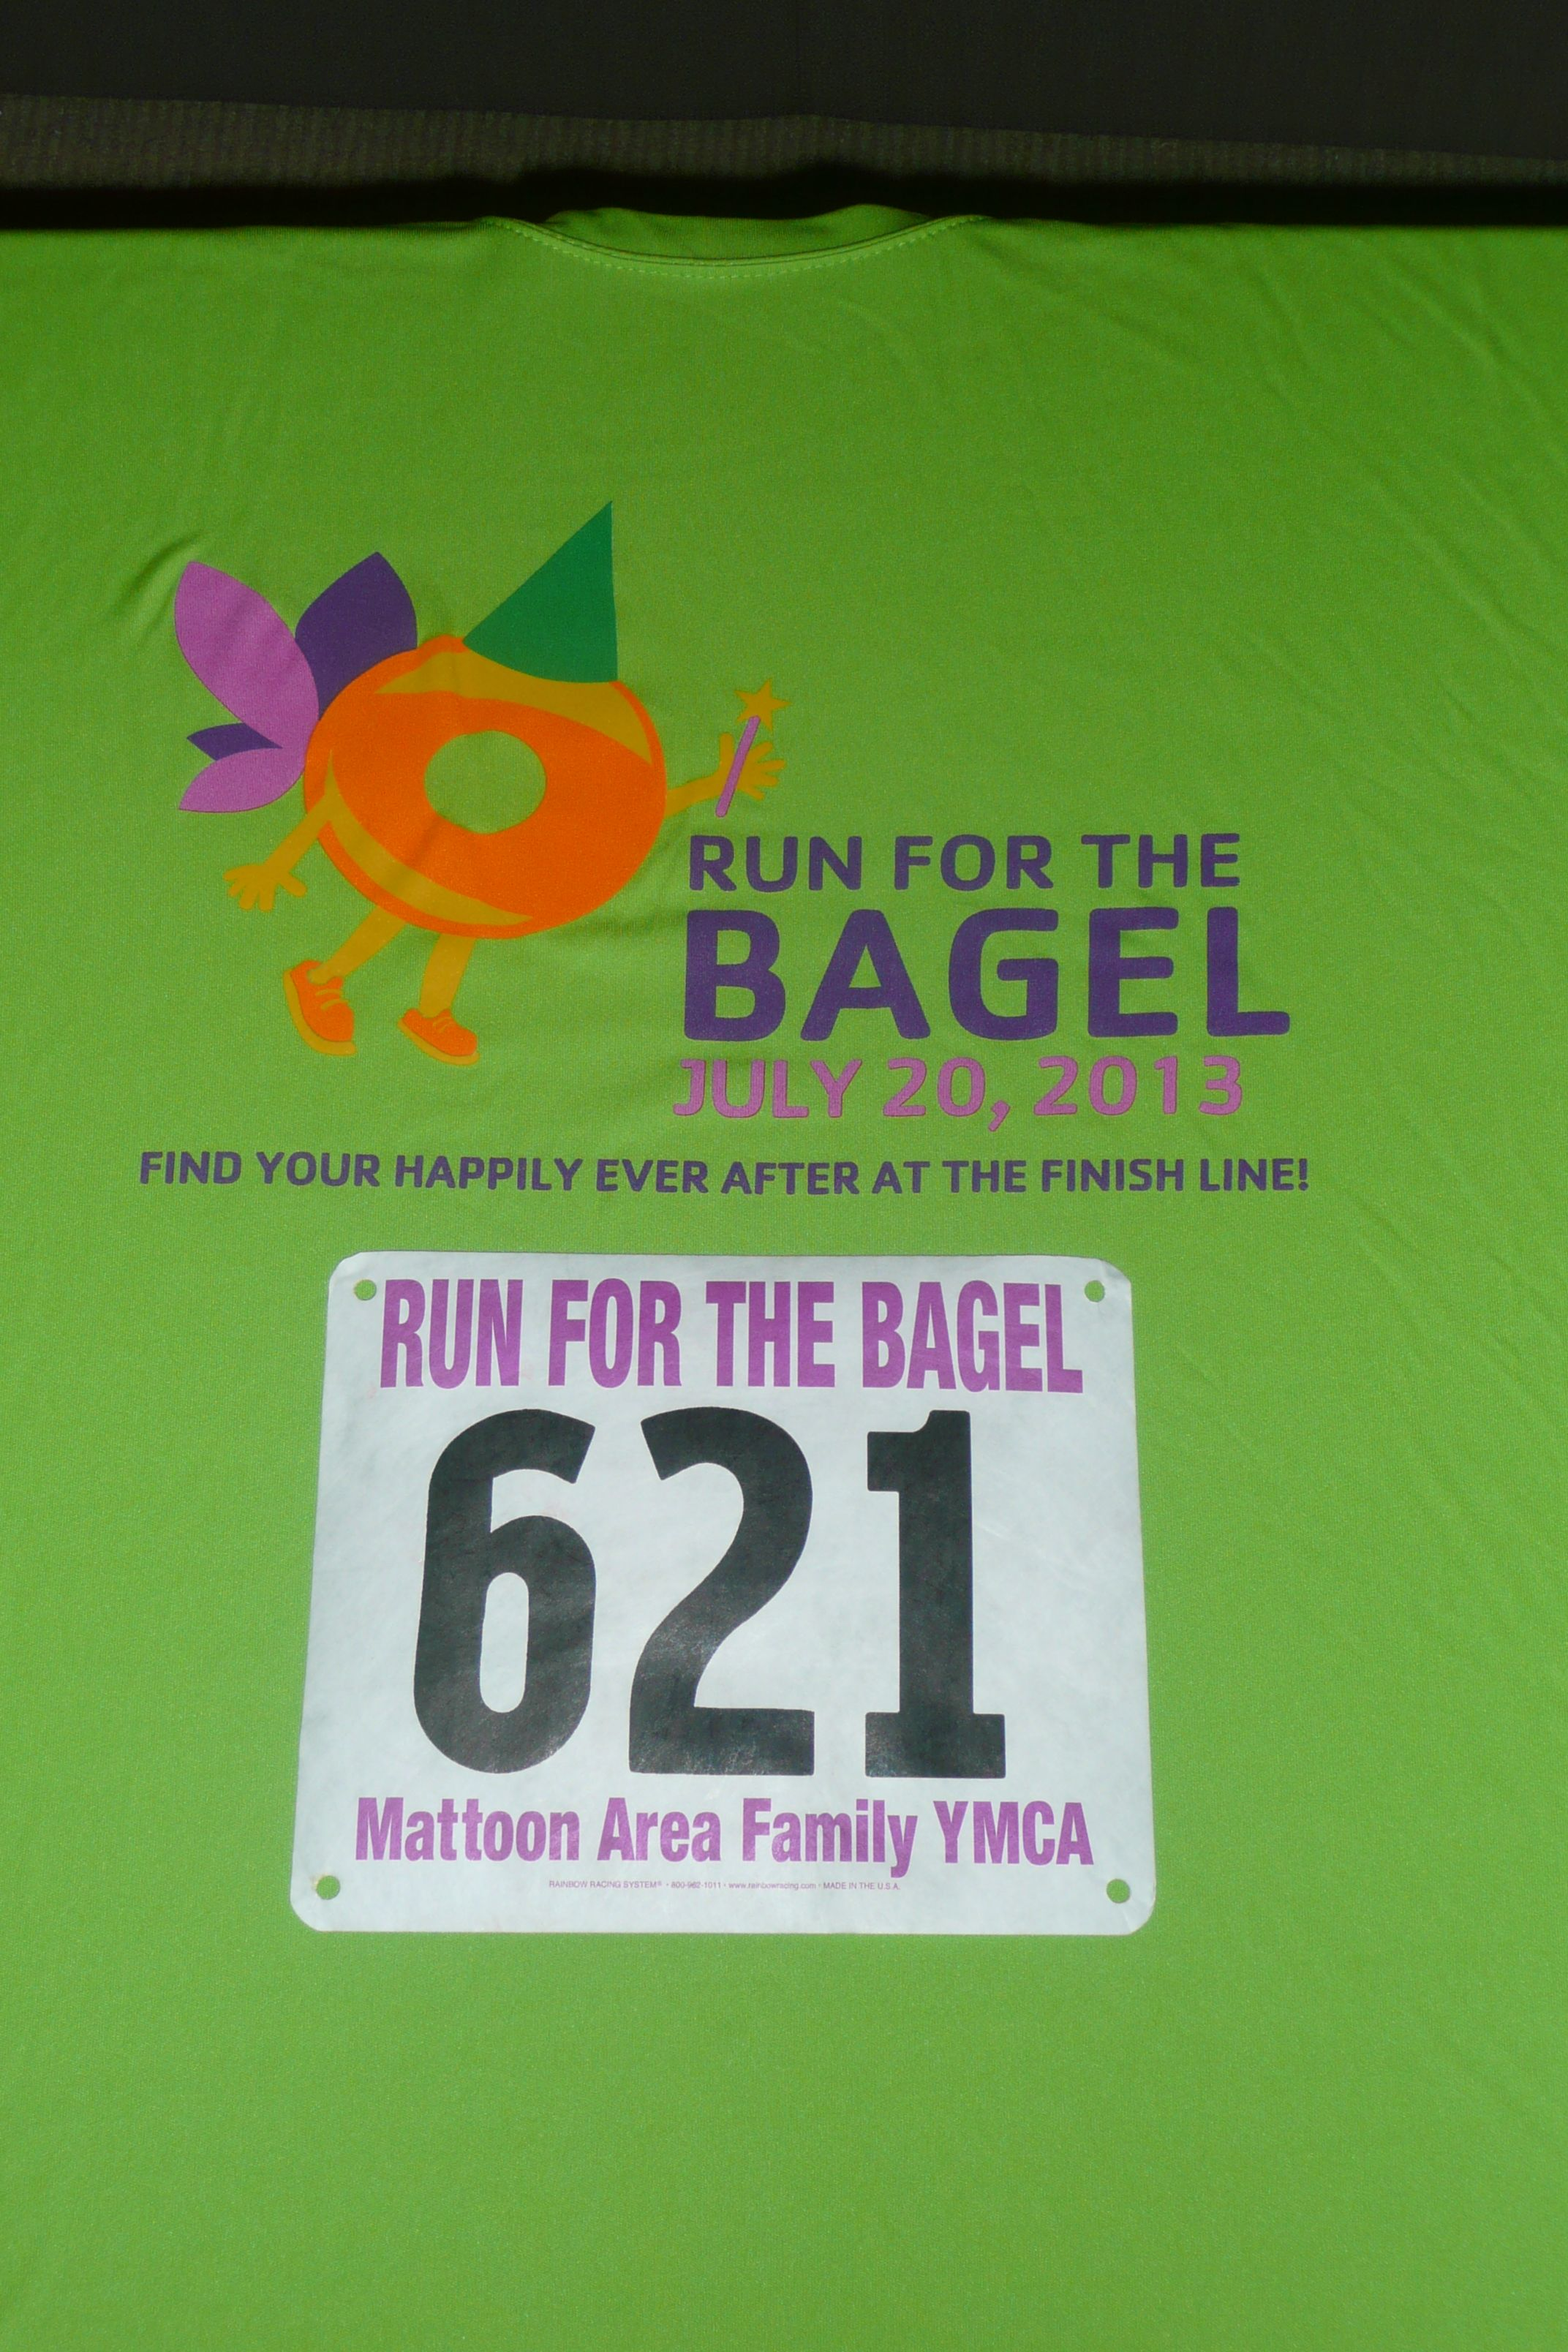 Try To Look Like A Bad Ass Running In ThisRun For The Bagel